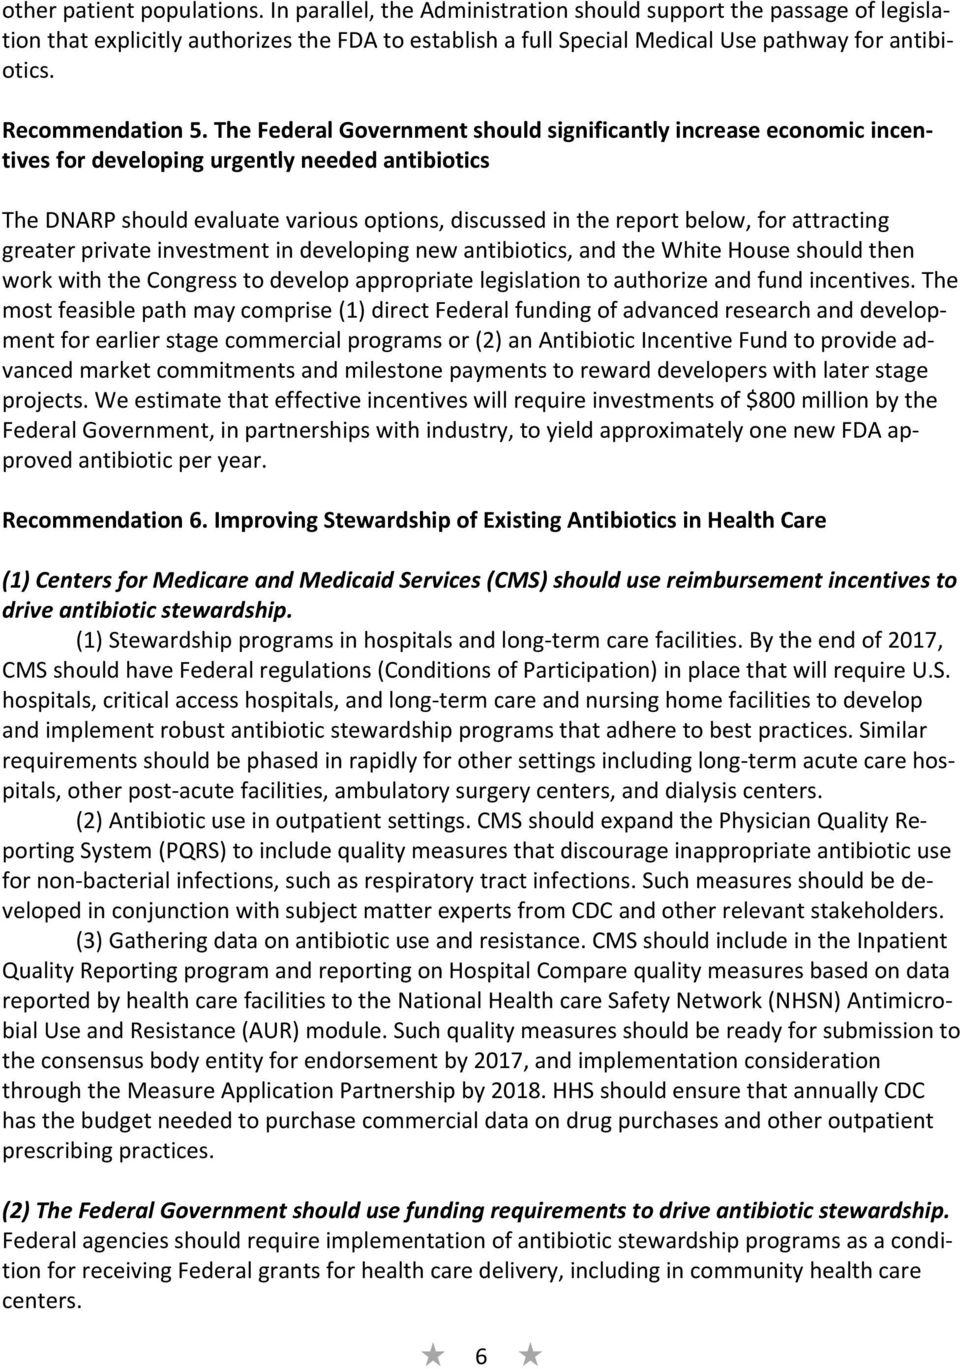 The Federal Government should significantly increase economic incentives for developing urgently needed antibiotics The DNARP should evaluate various options, discussed in the report below, for